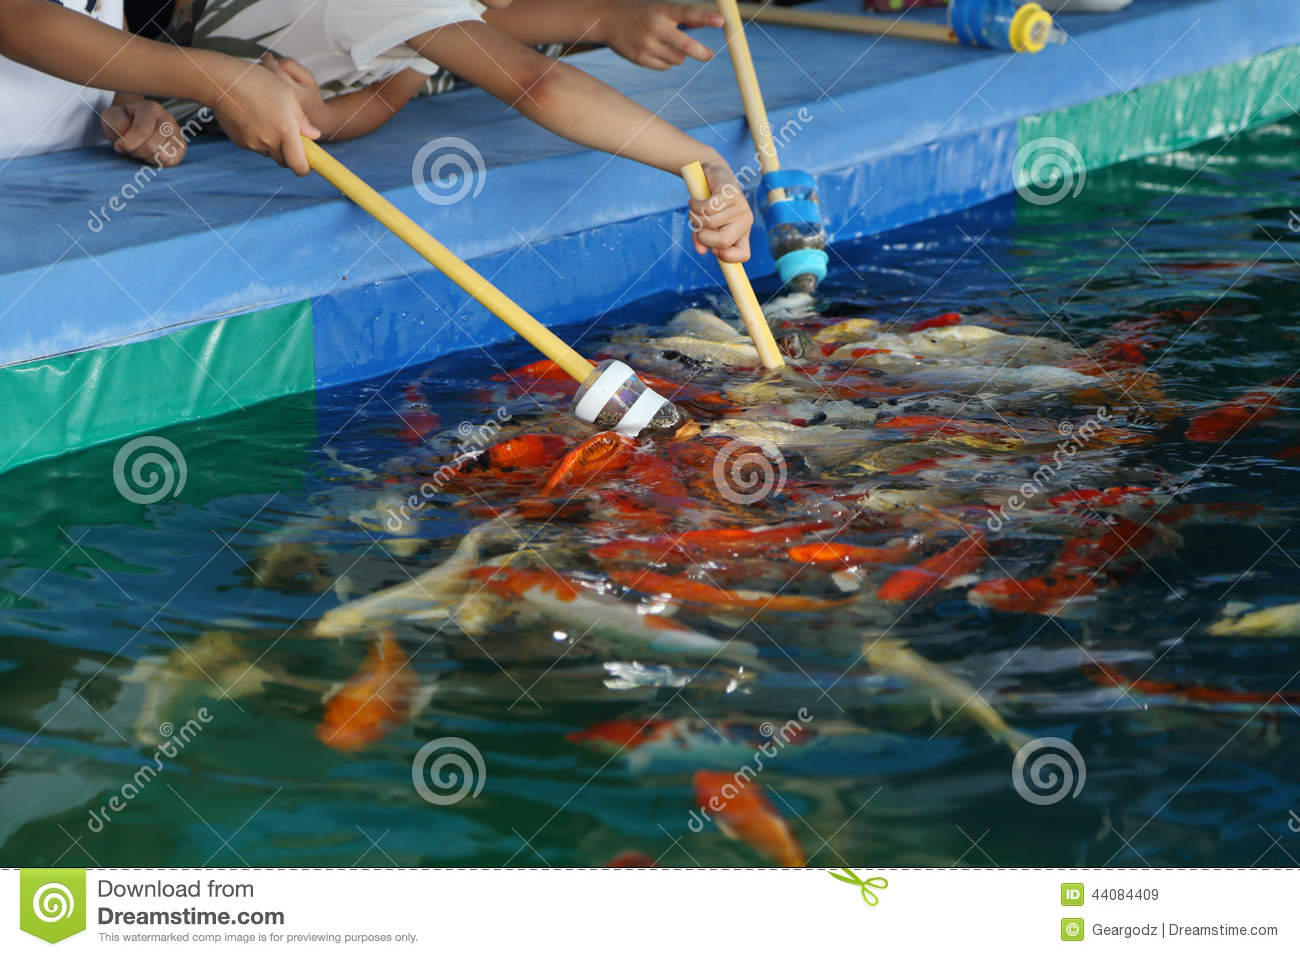 Feeding koi fish with milk bottle stock image image of for Koi carp farm